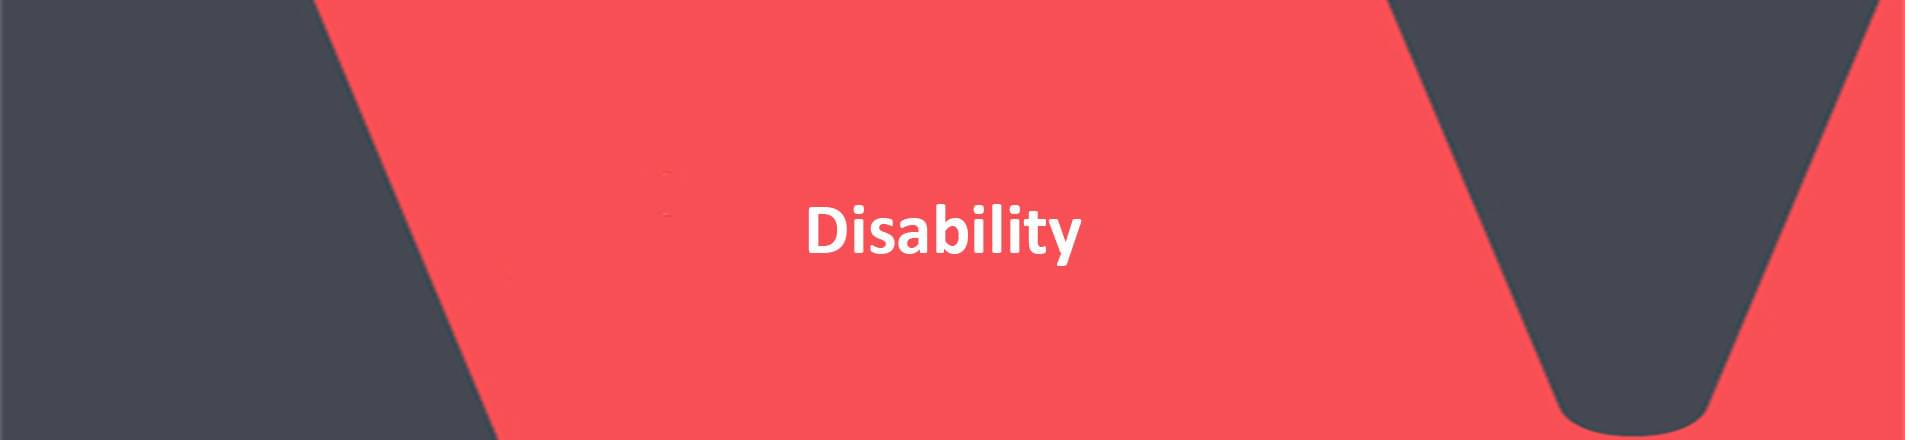 "Image with the text ""Disability"""